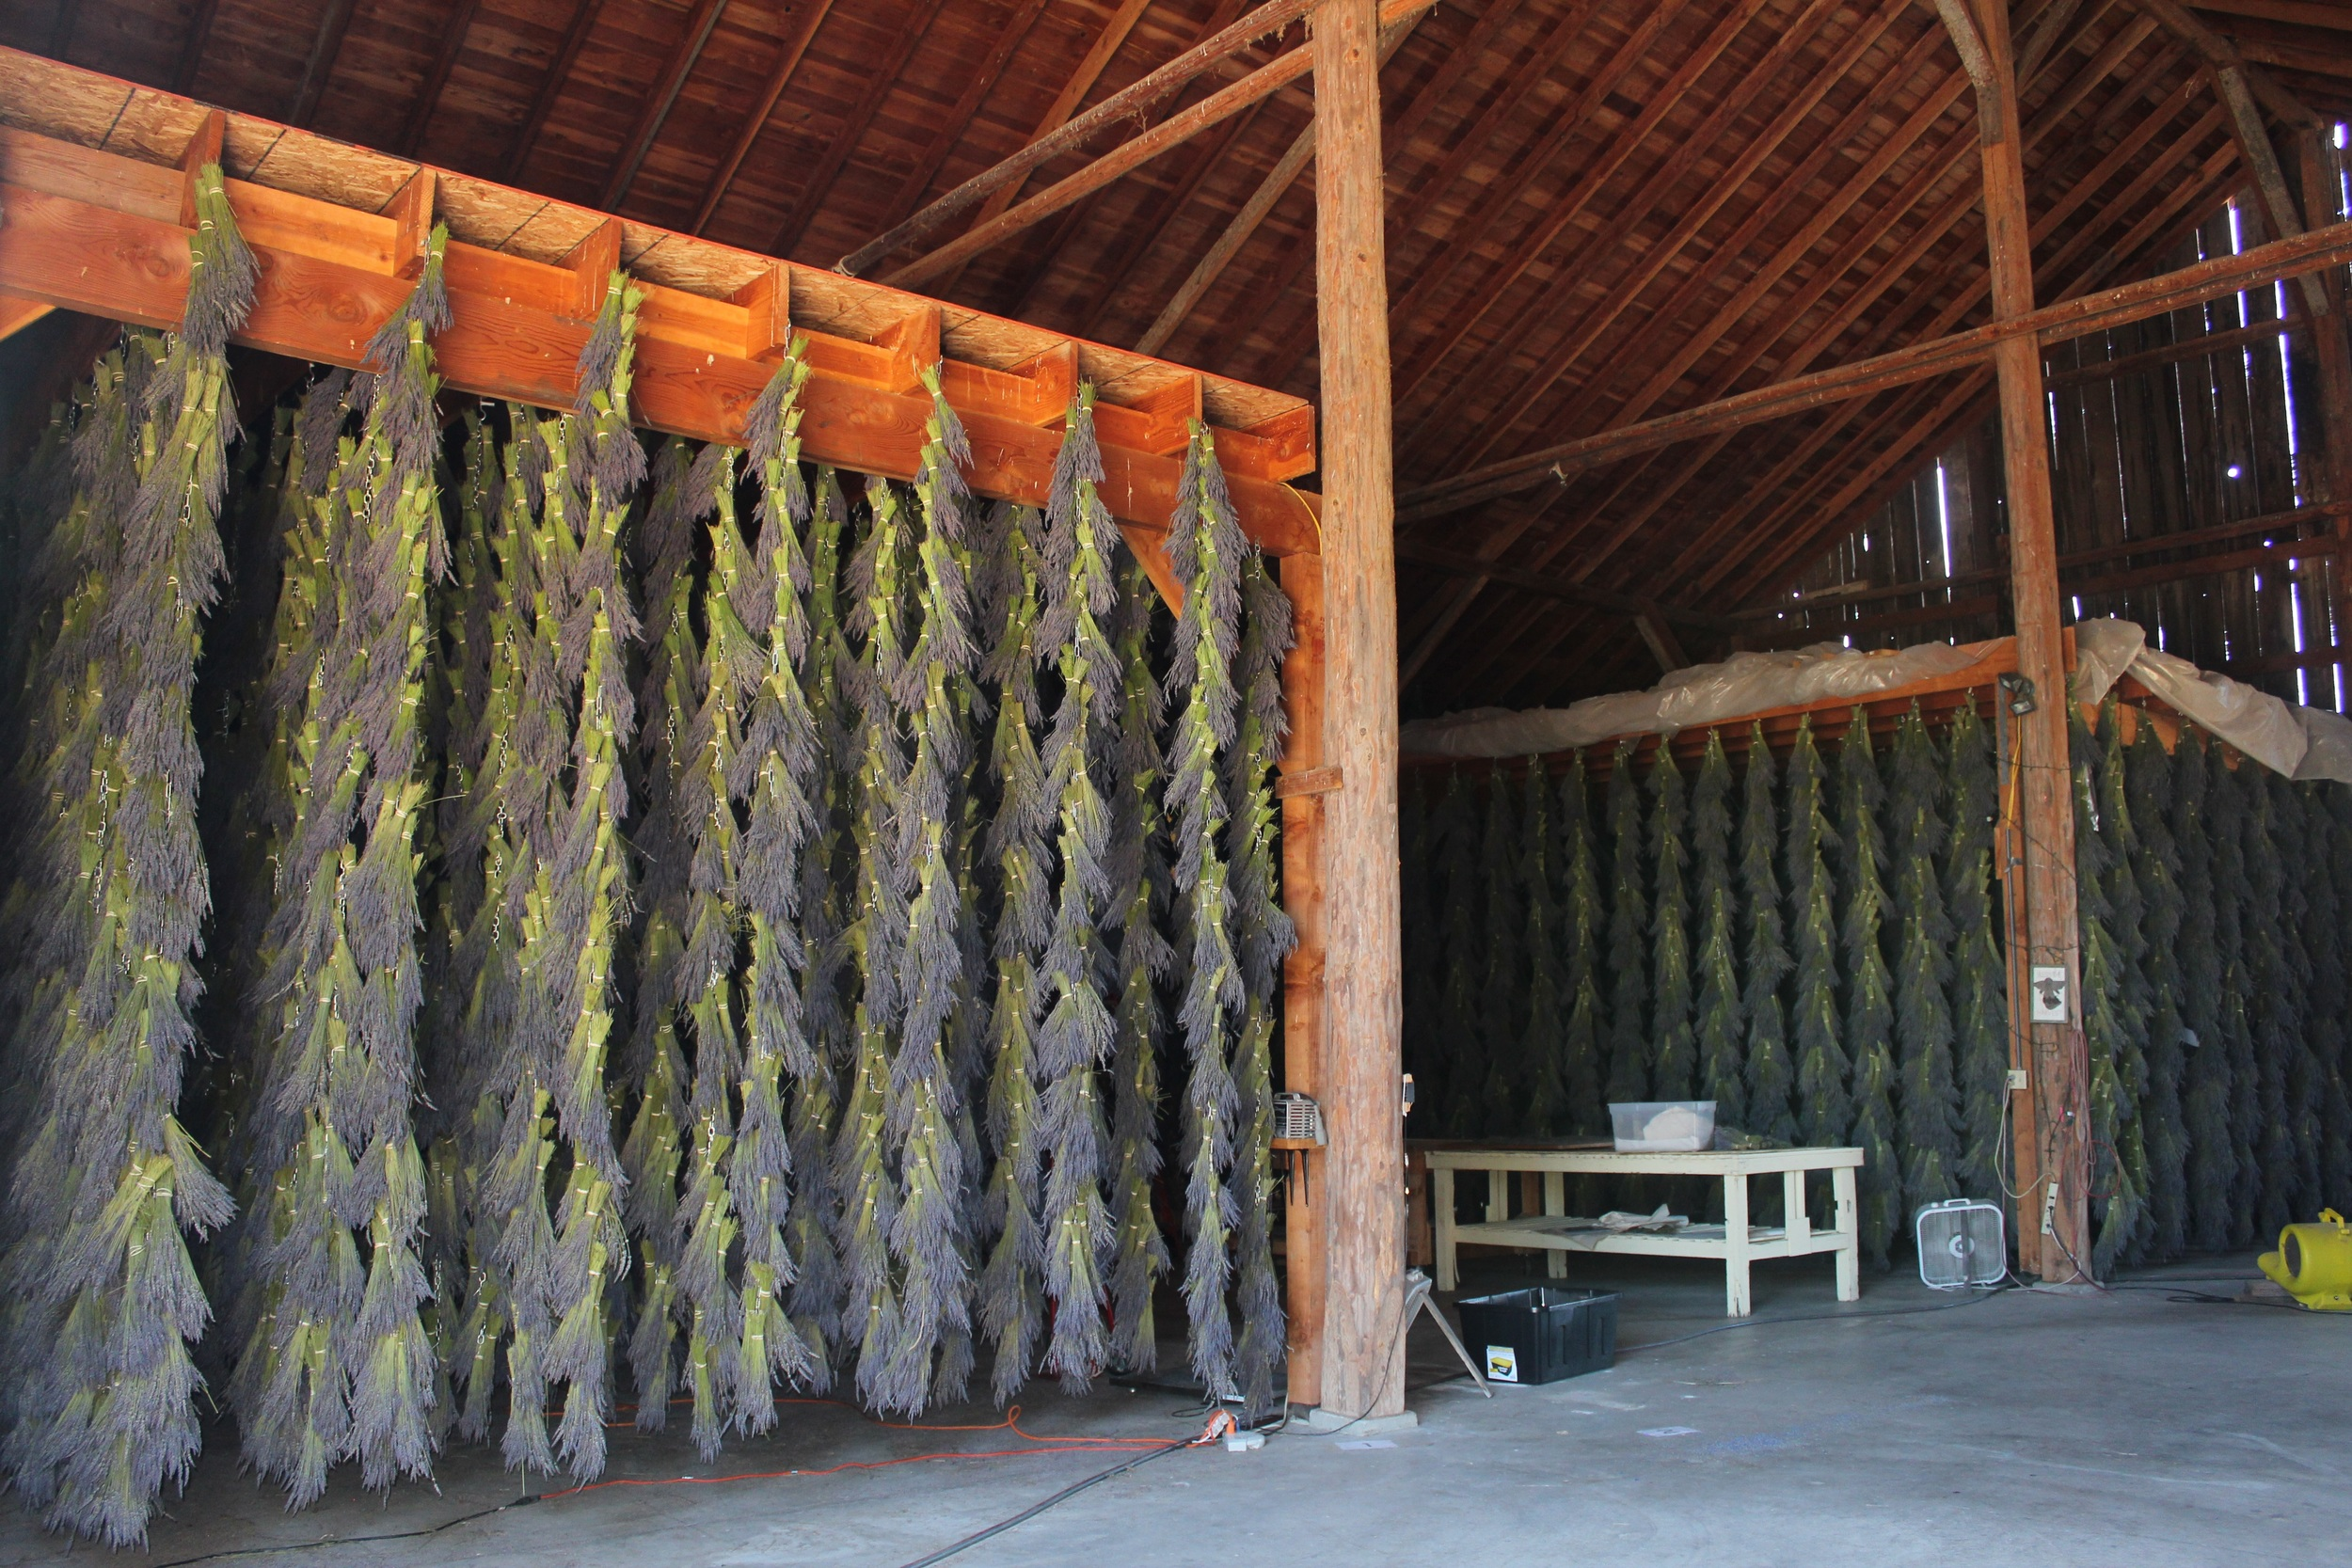 lavender hanging in the bar to dry